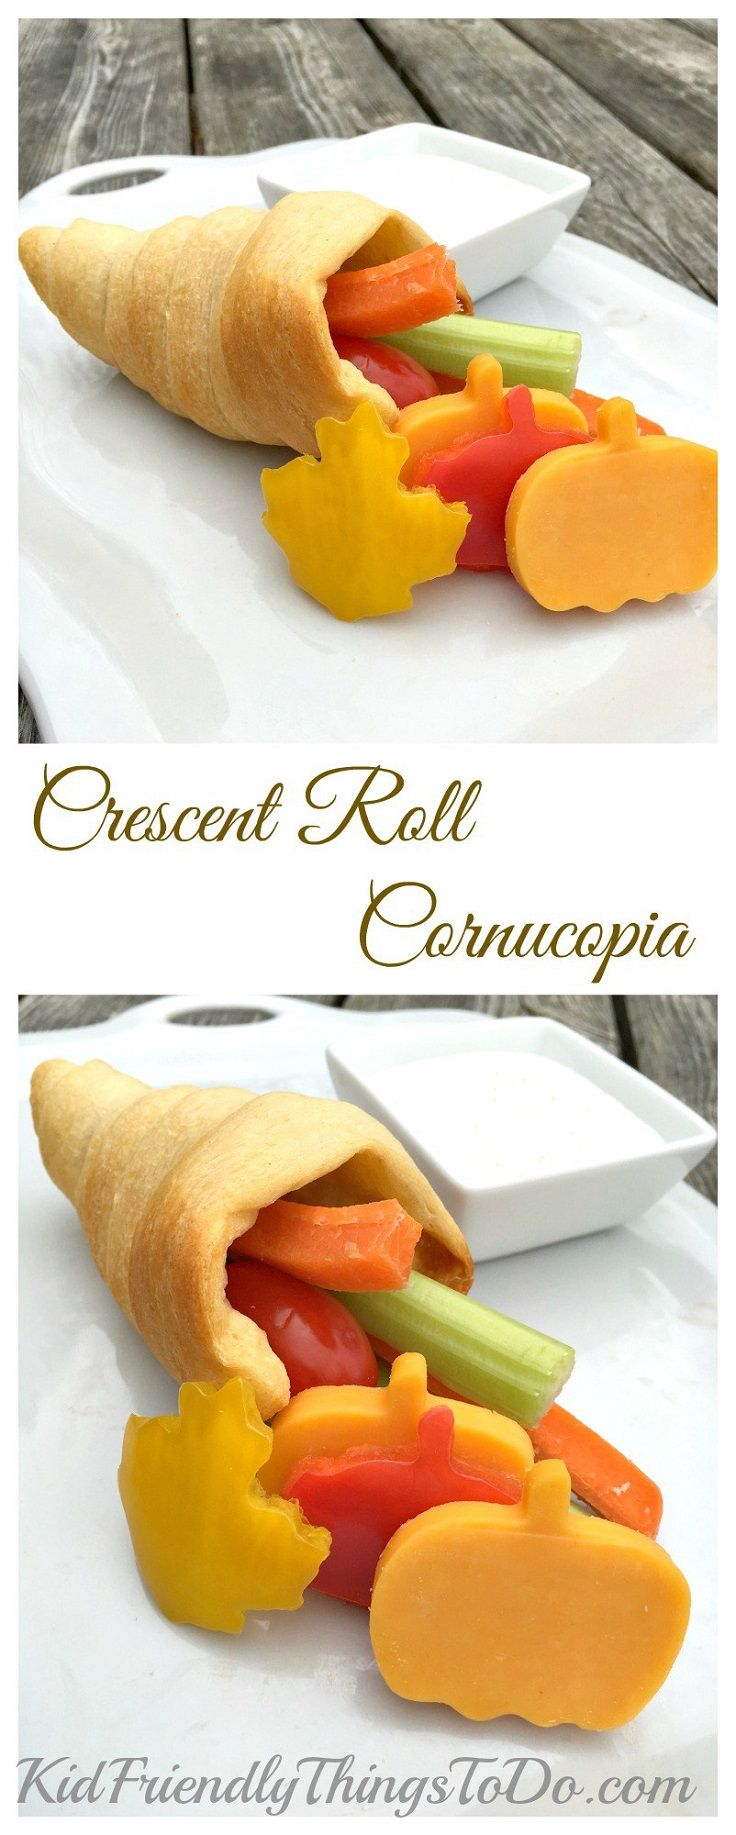 Thanksgiving Crescent Roll Cornucopias With Vegetables and Dip - Thanksgiving Food List: 15 Creative Food Ideas for A Fabulous Thanksgiving Feast